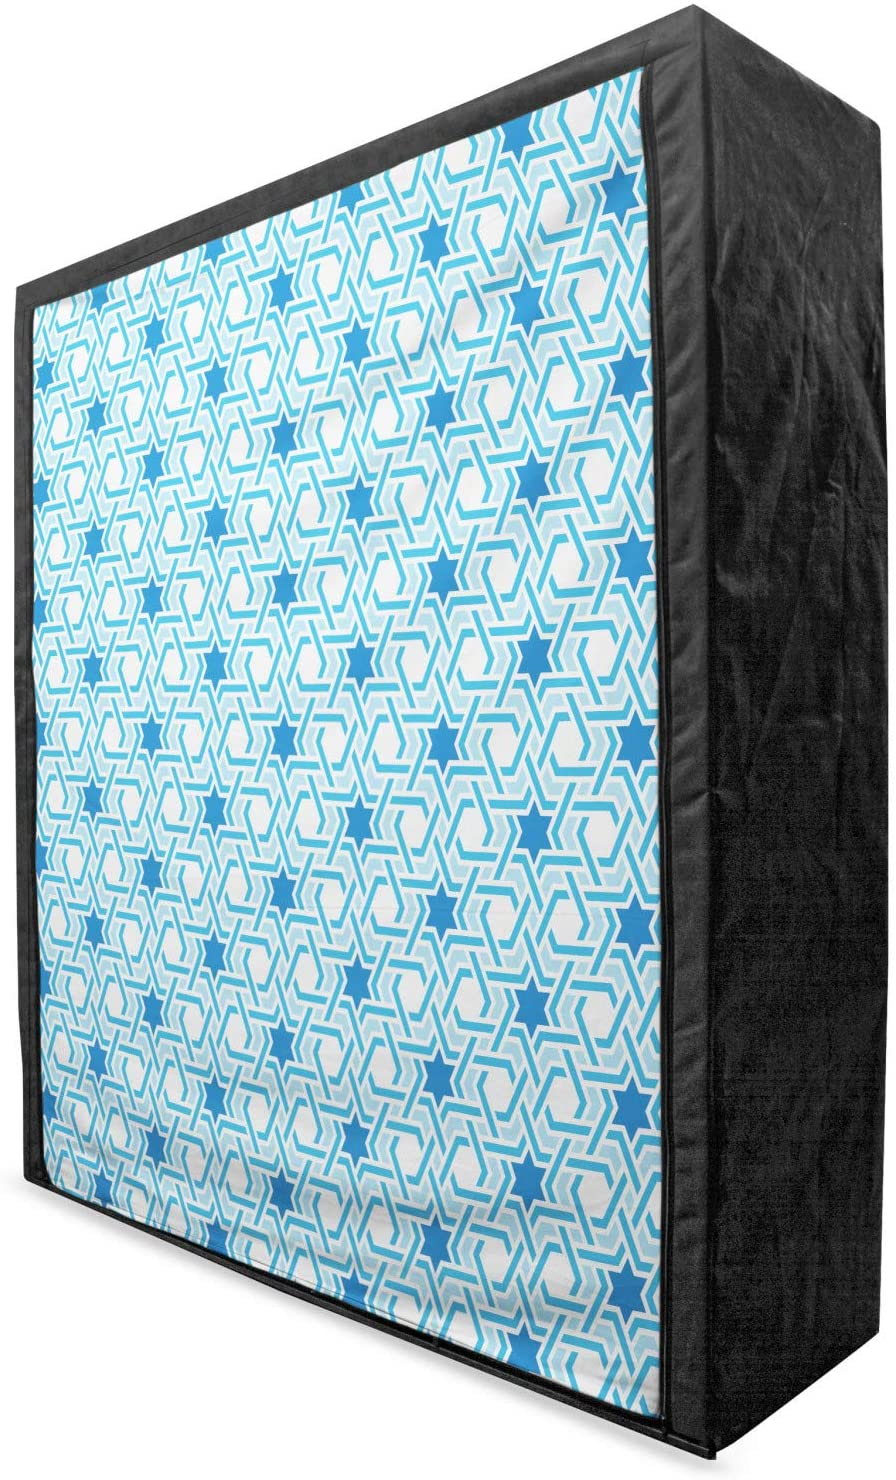 Lunarable Orient Portable Fabric Wardrobe, Old Historical Oriental Ottoman Artwork with Pattern of Stars Geometric Art, Clothing Organizer and Storage Closet with Shelves, 59